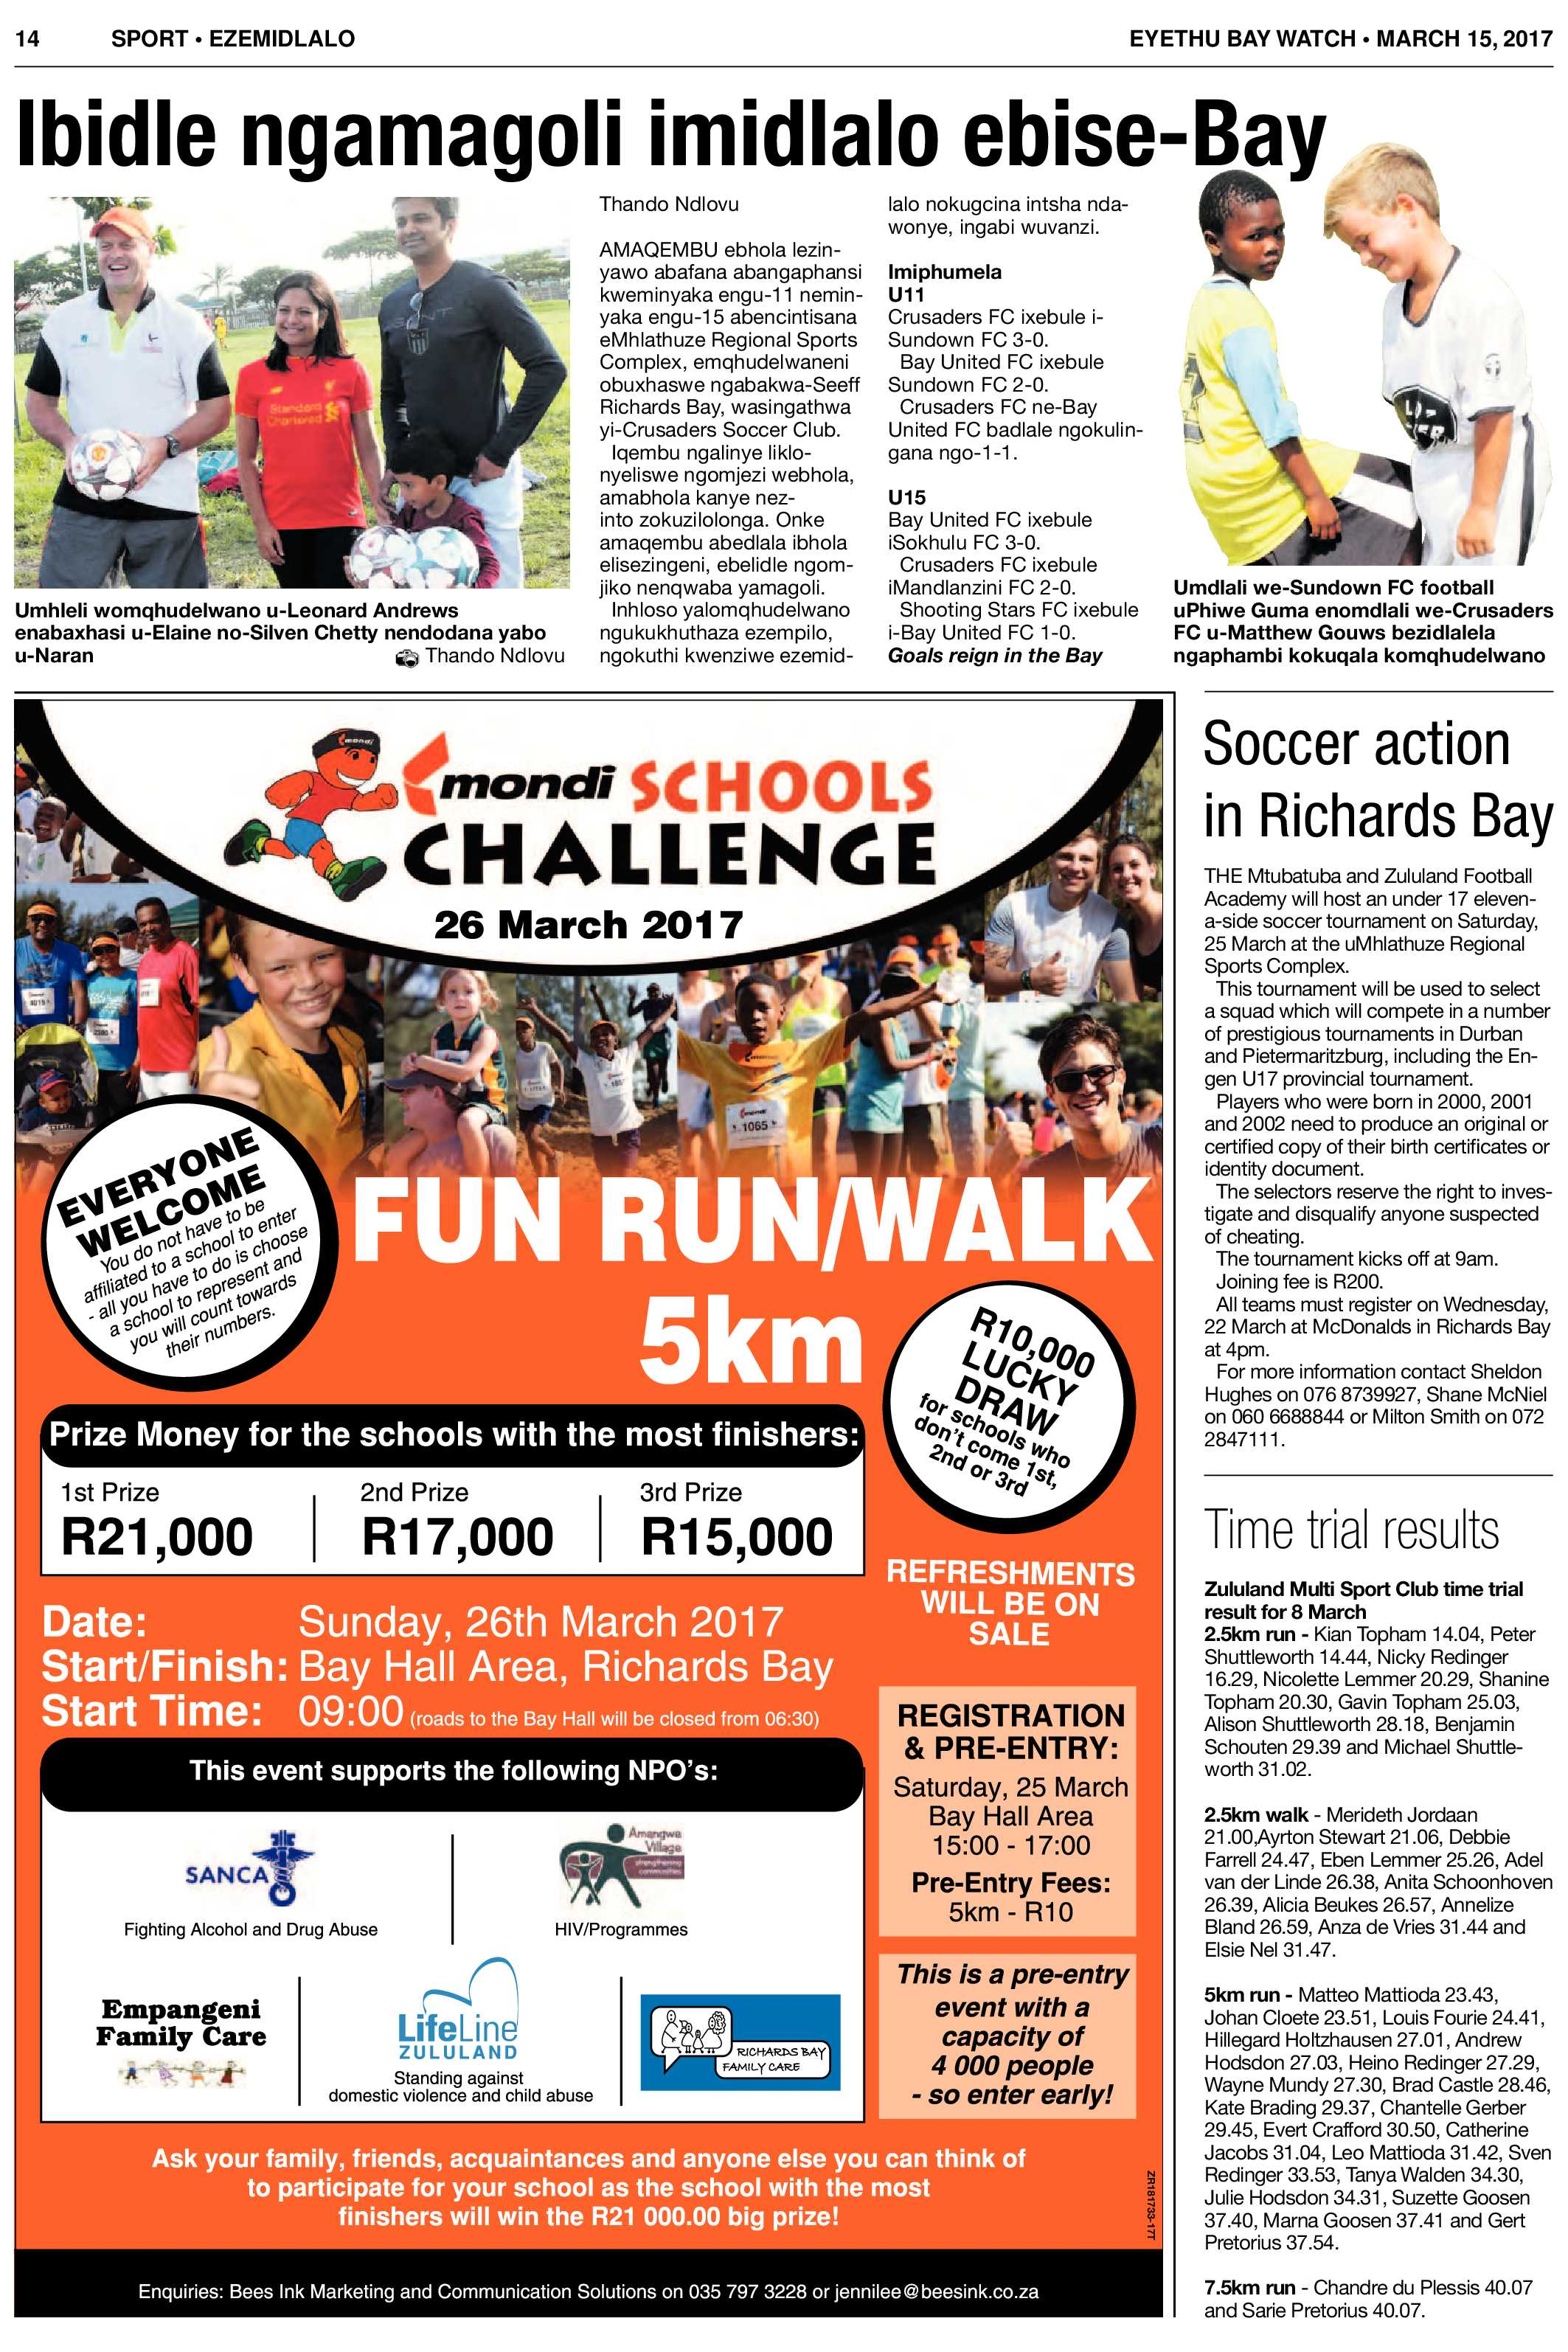 eyethu-baywatch-15-march-epapers-page-14